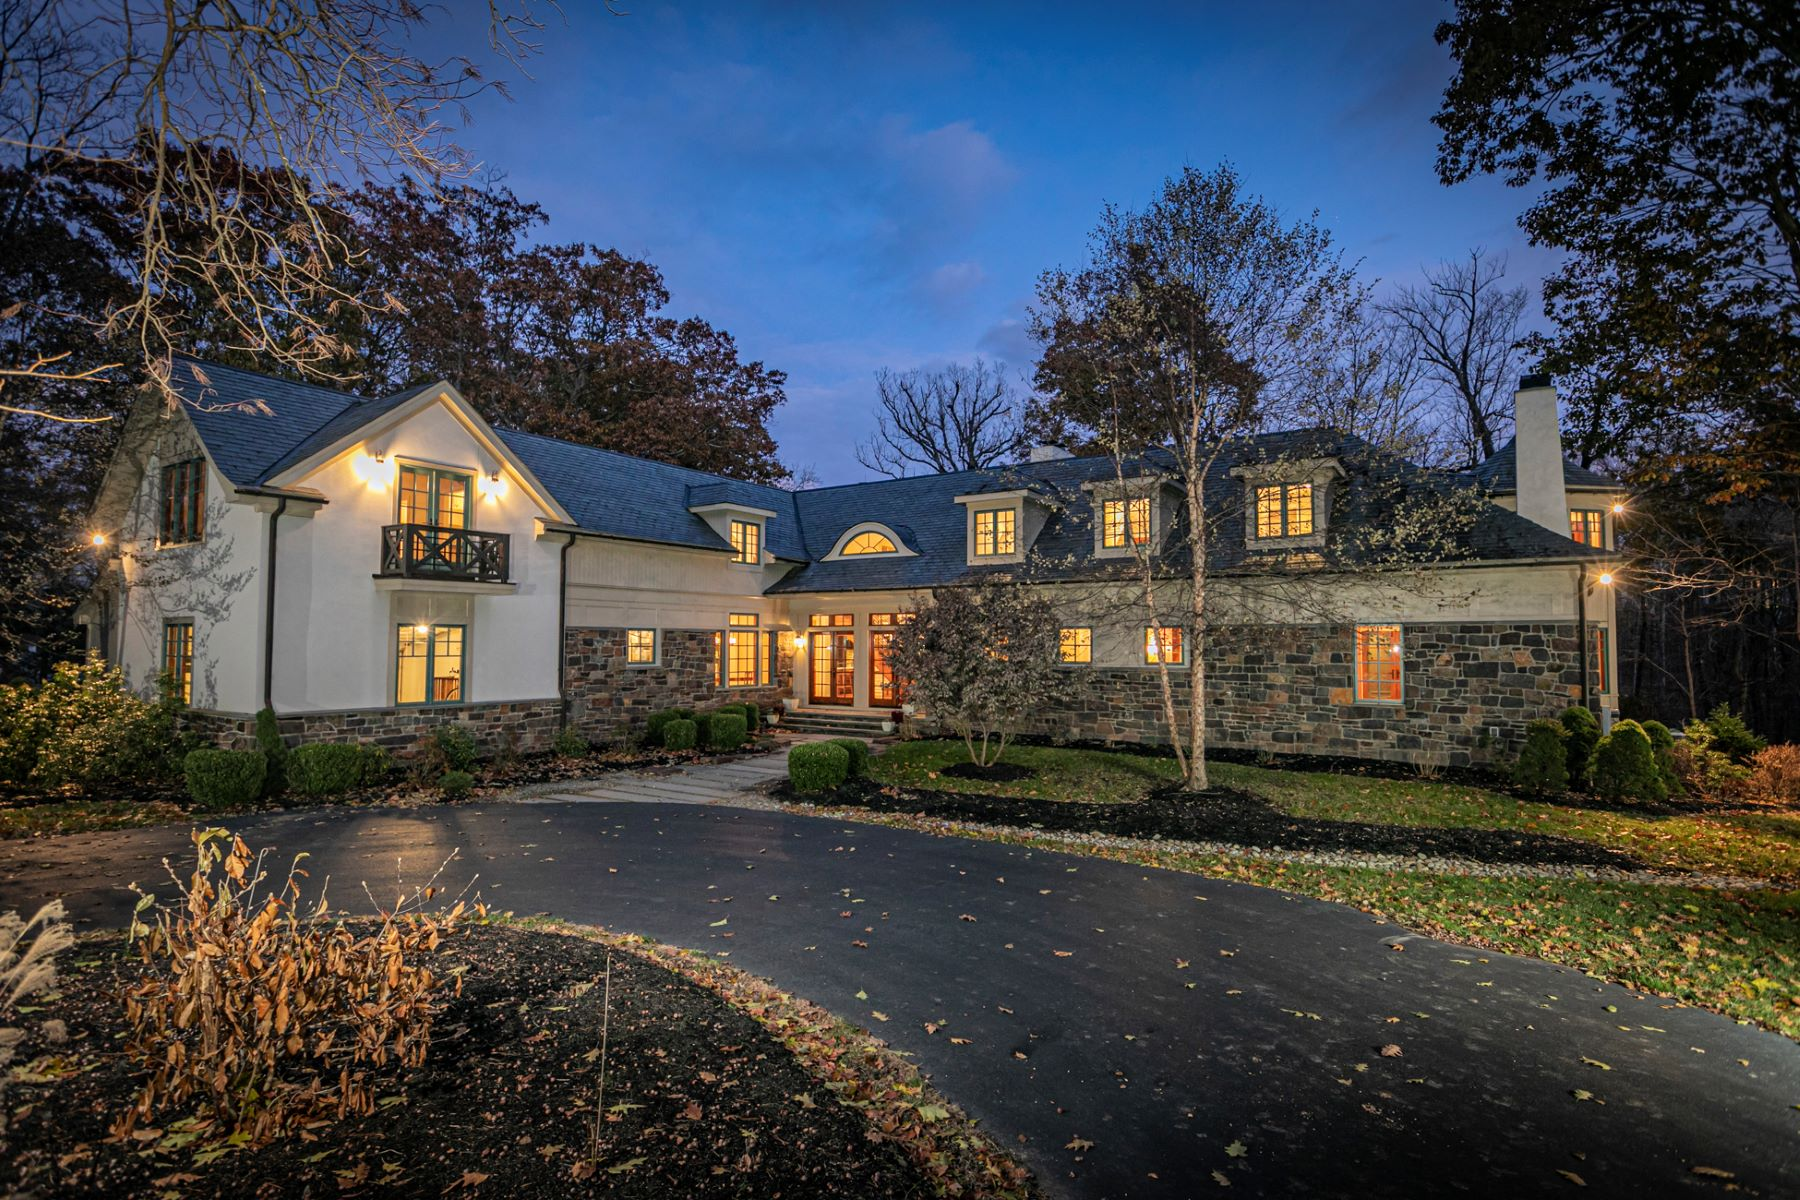 Single Family Homes για την Πώληση στο Luxury Craftsman Home Perched Above Stoney Brook 37 Stoney Brook Lane, Princeton, Νιου Τζερσεϋ 08540 Ηνωμένες Πολιτείες